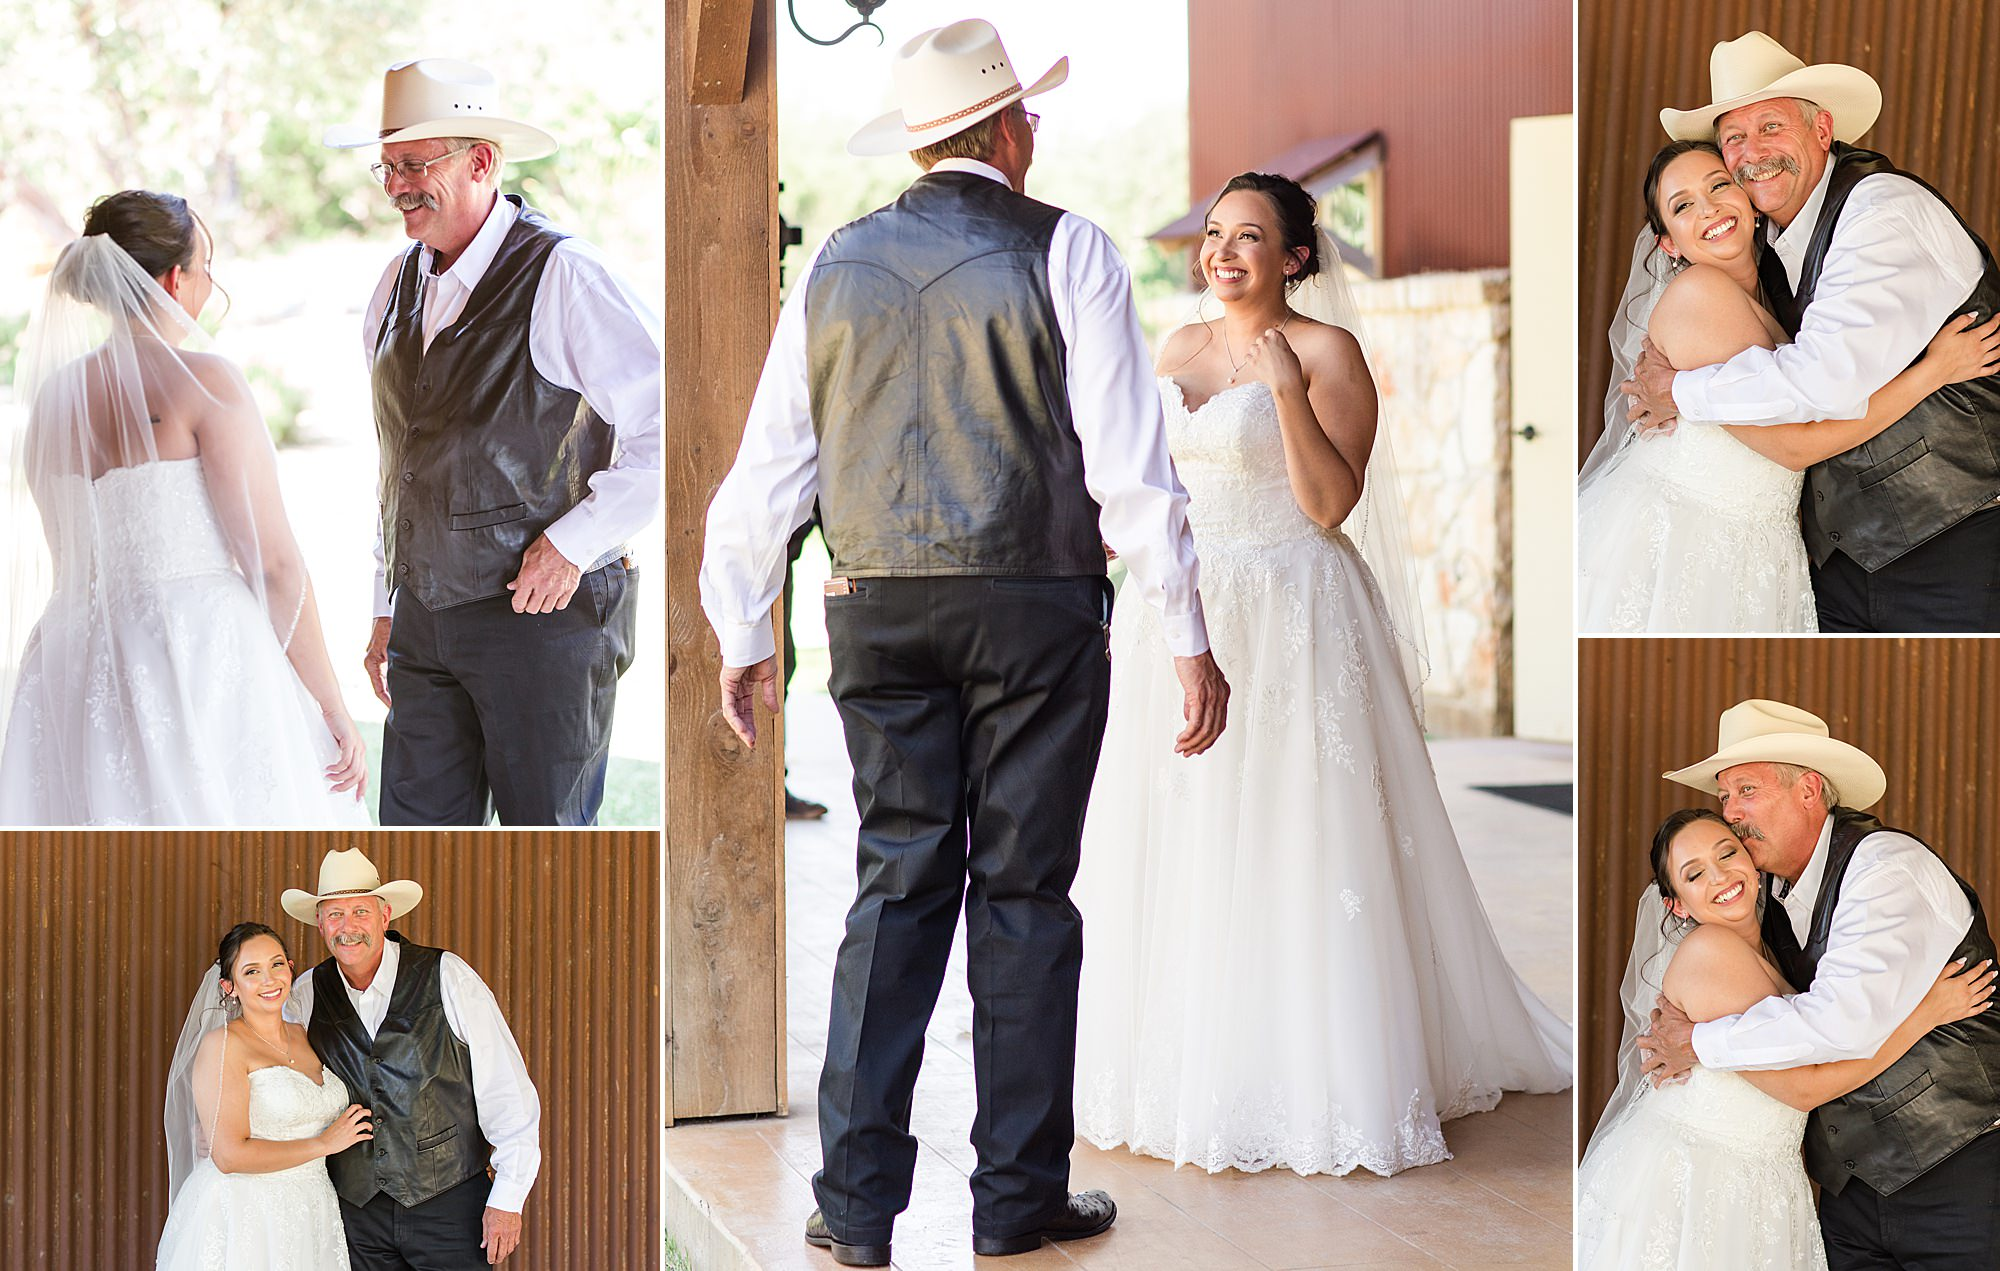 Wedding-Photographer-Bulverde-Texas-Western-Sky-Event-Venue-Carly-Barton-Photography_0008.jpg